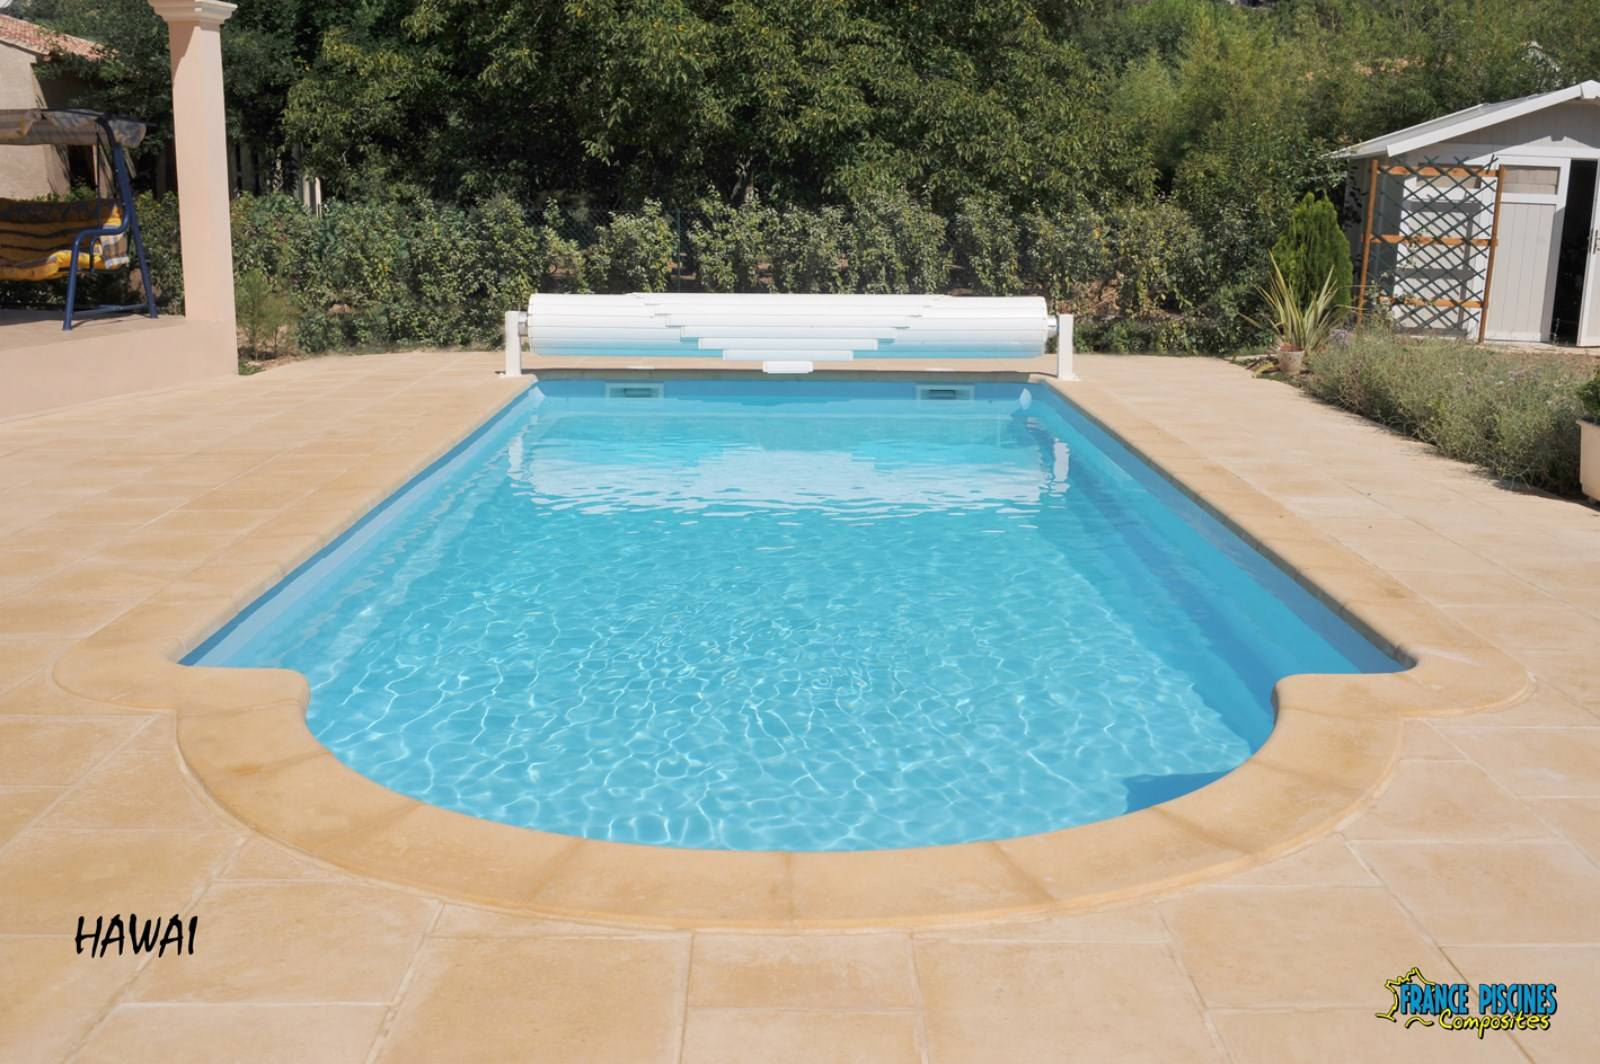 Vente et pose de piscine enterr e coque polyester for Piscine 9x4 prix